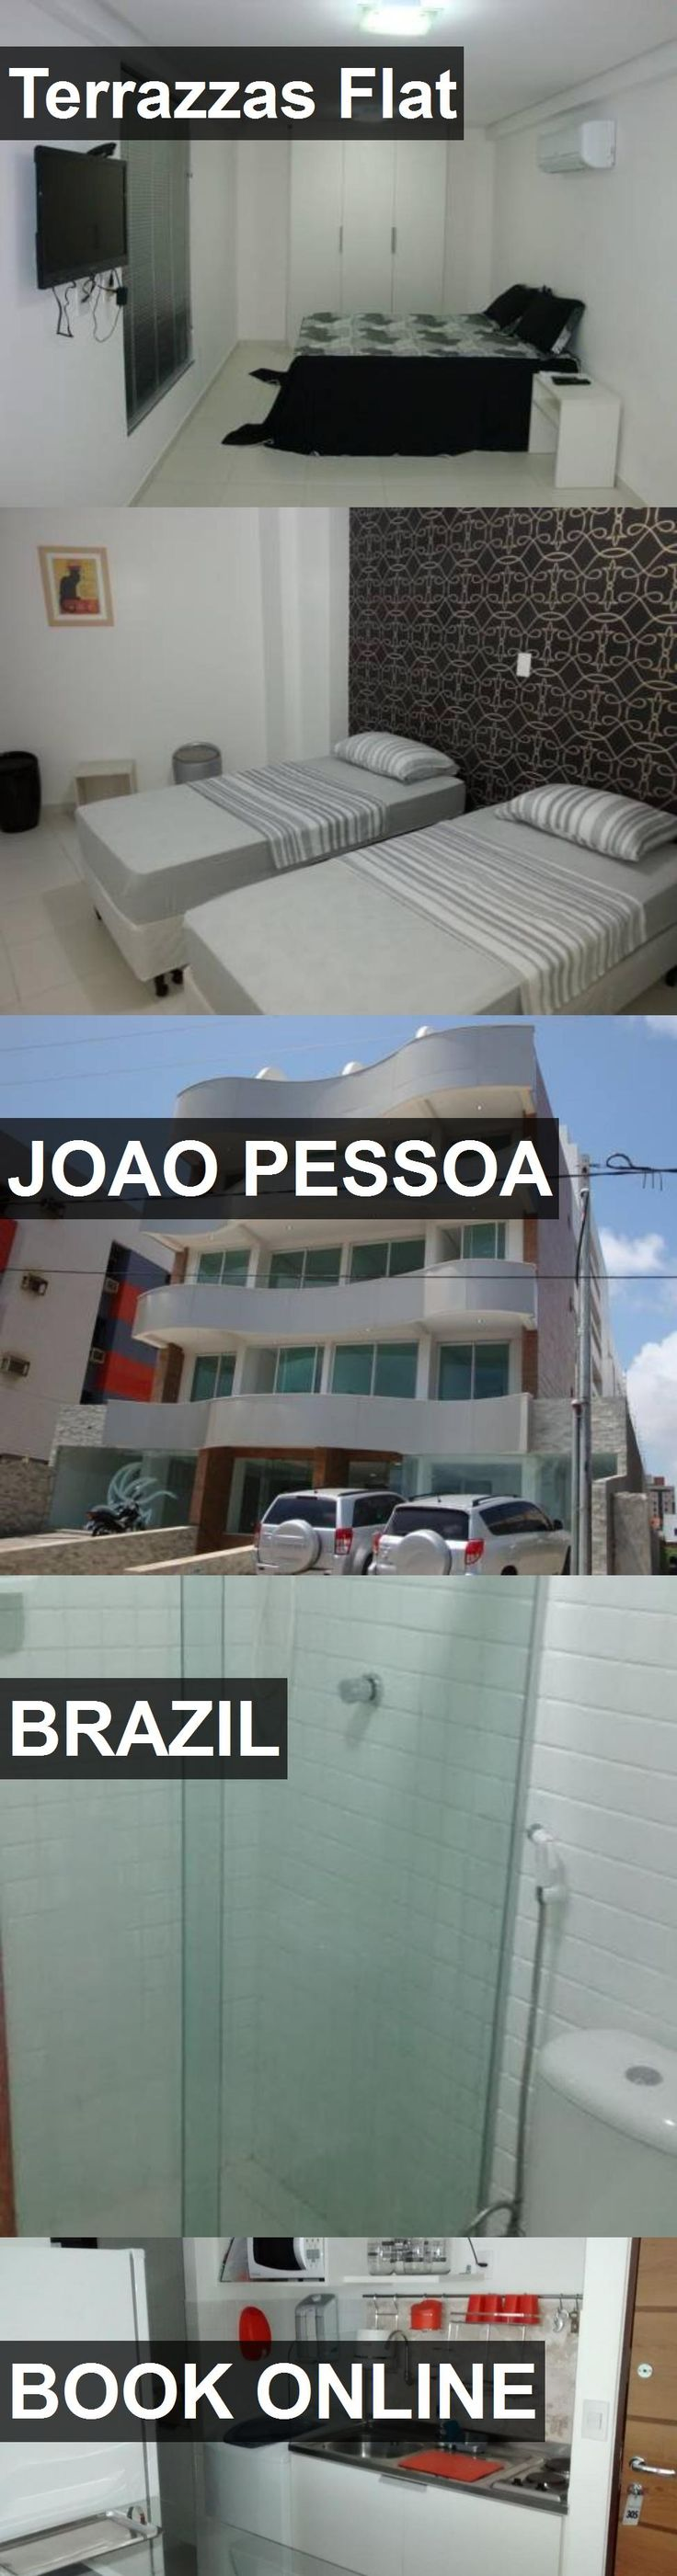 Hotel Terrazzas Flat in Joao Pessoa, Brazil. For more information, photos, reviews and best prices please follow the link. #Brazil #JoaoPessoa #TerrazzasFlat #hotel #travel #vacation